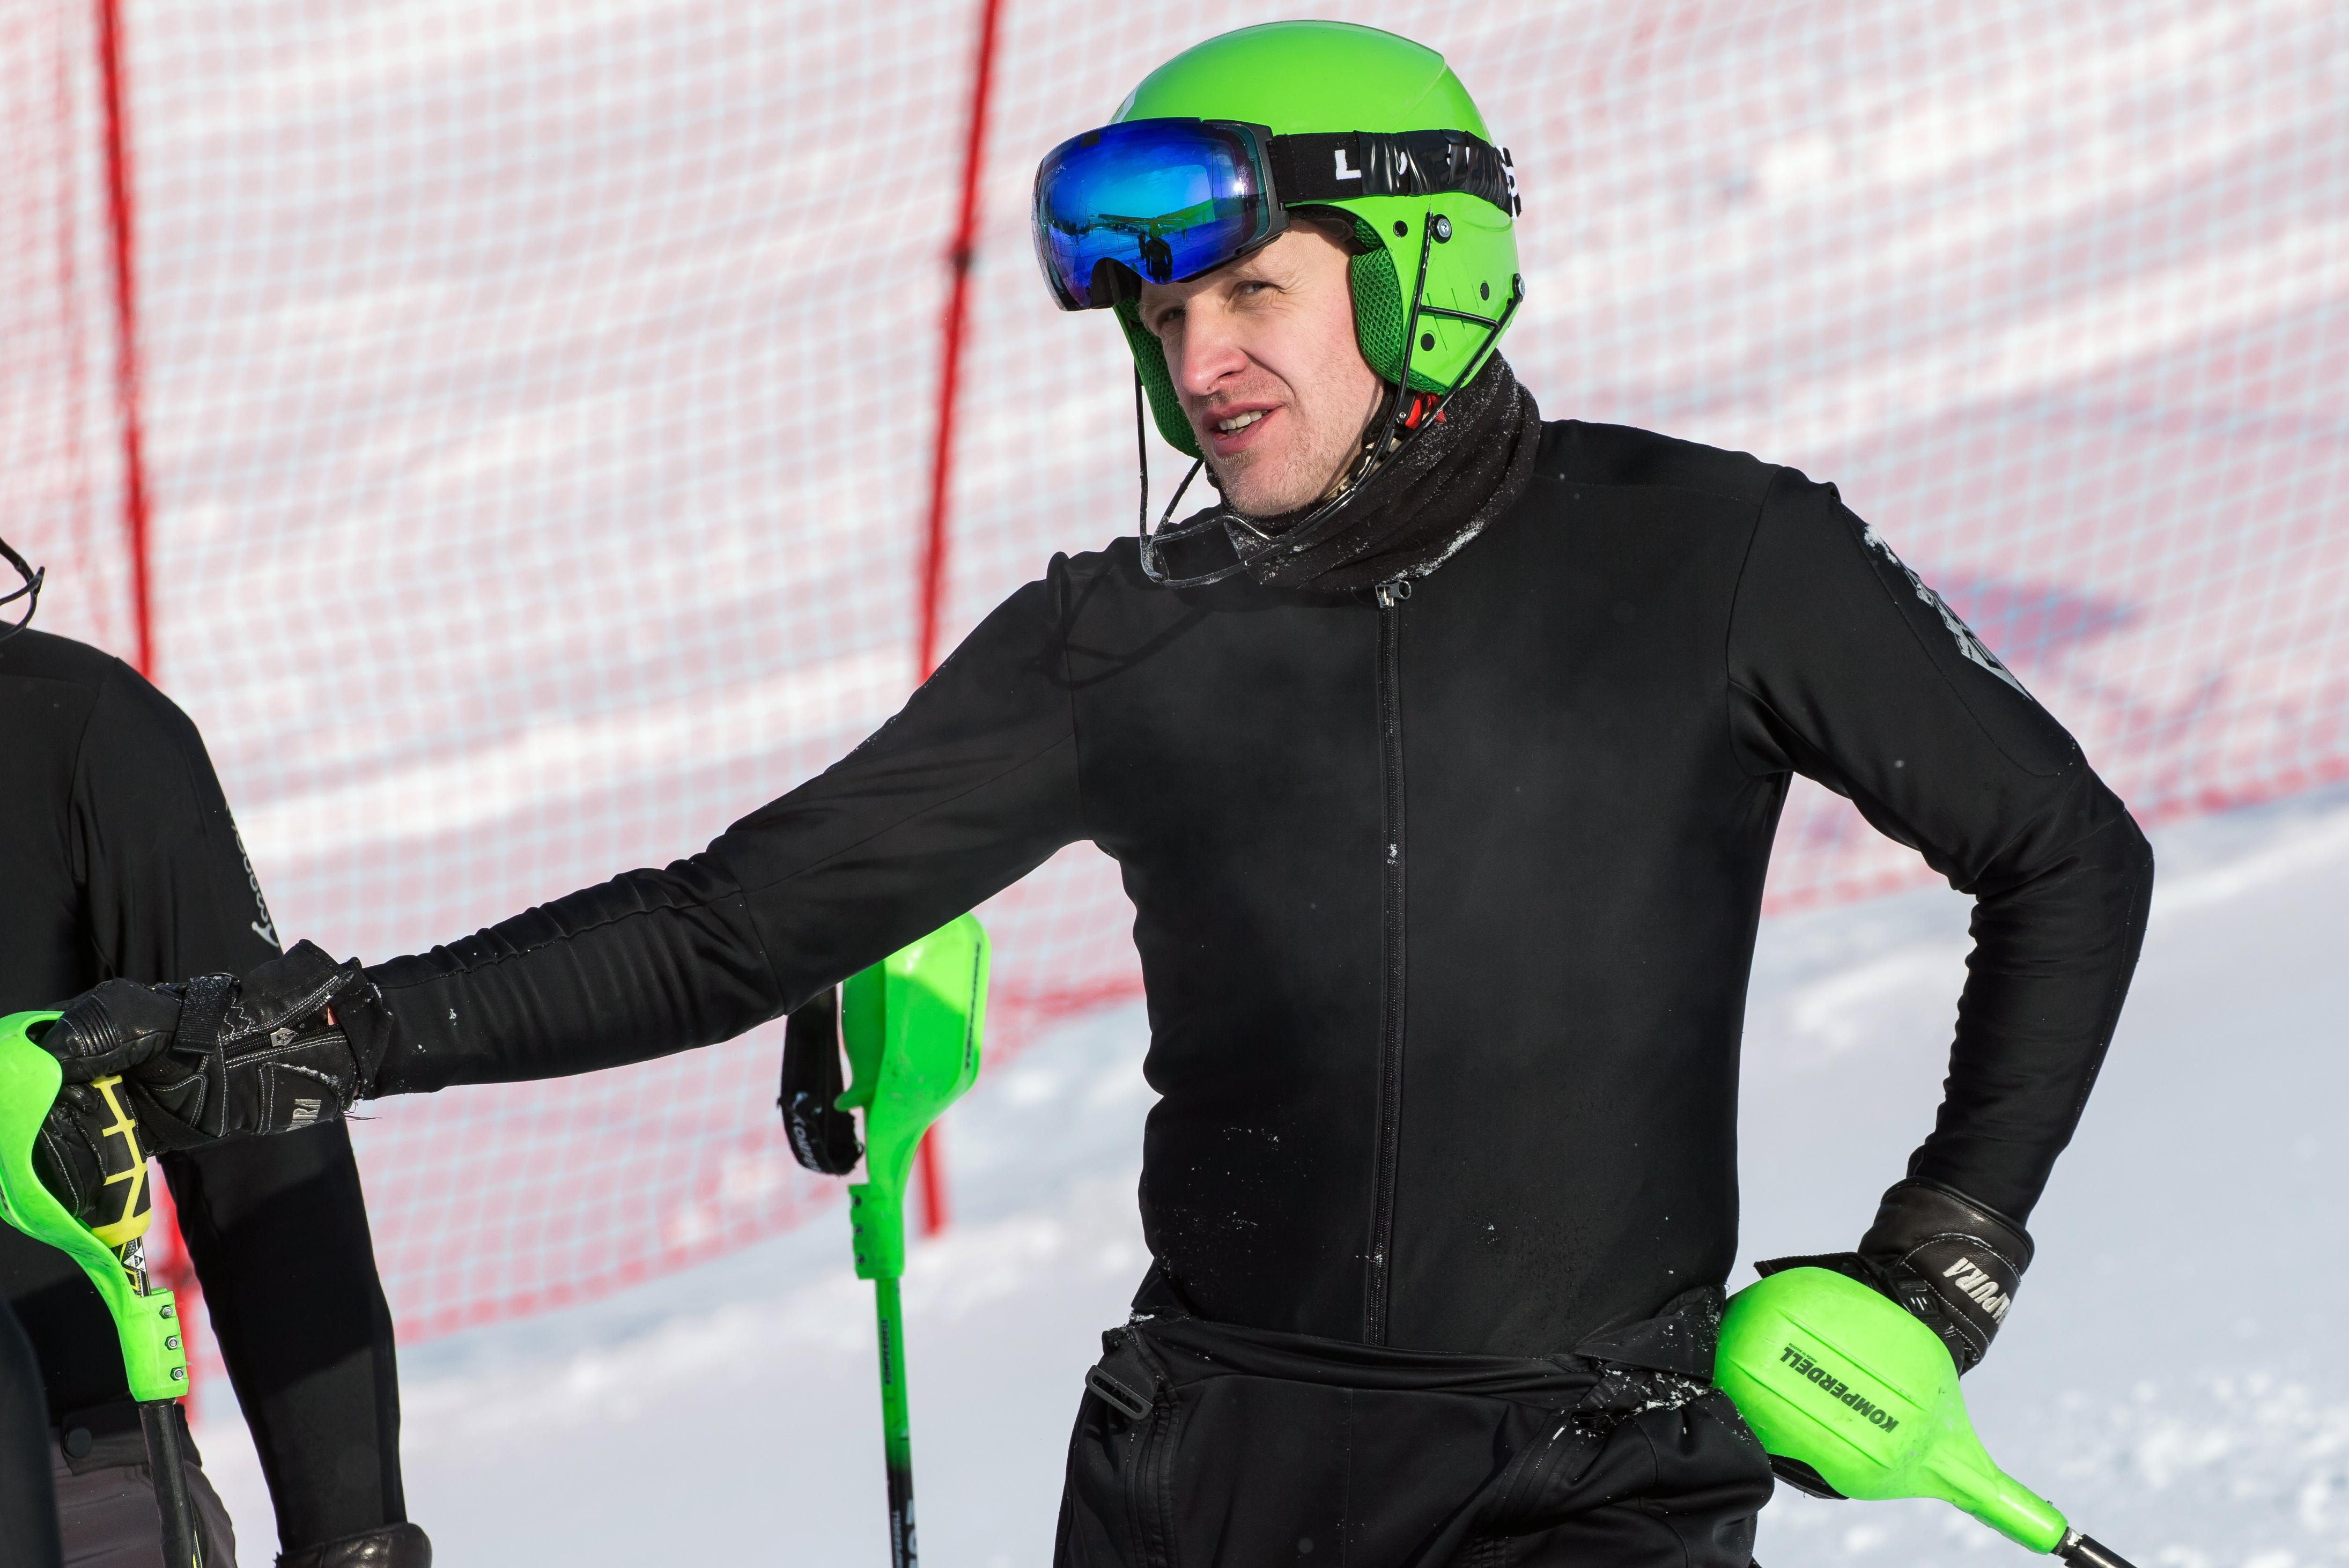 Sergey Alexandrov is one those chosen to be part of the NPA team in PyeongChang